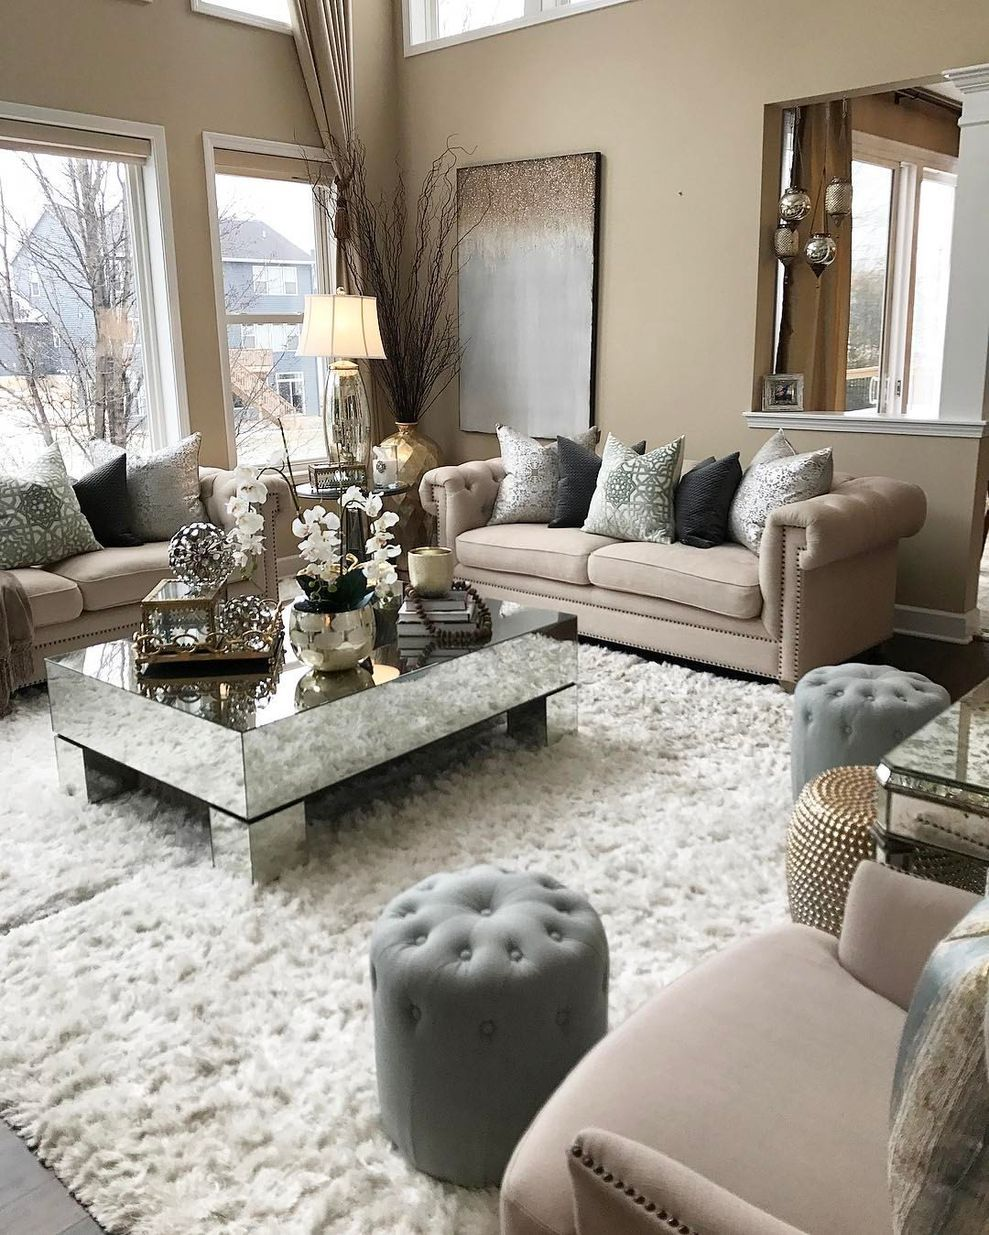 Great 42 Incredible Teal And Silver Living Room Design Ideas